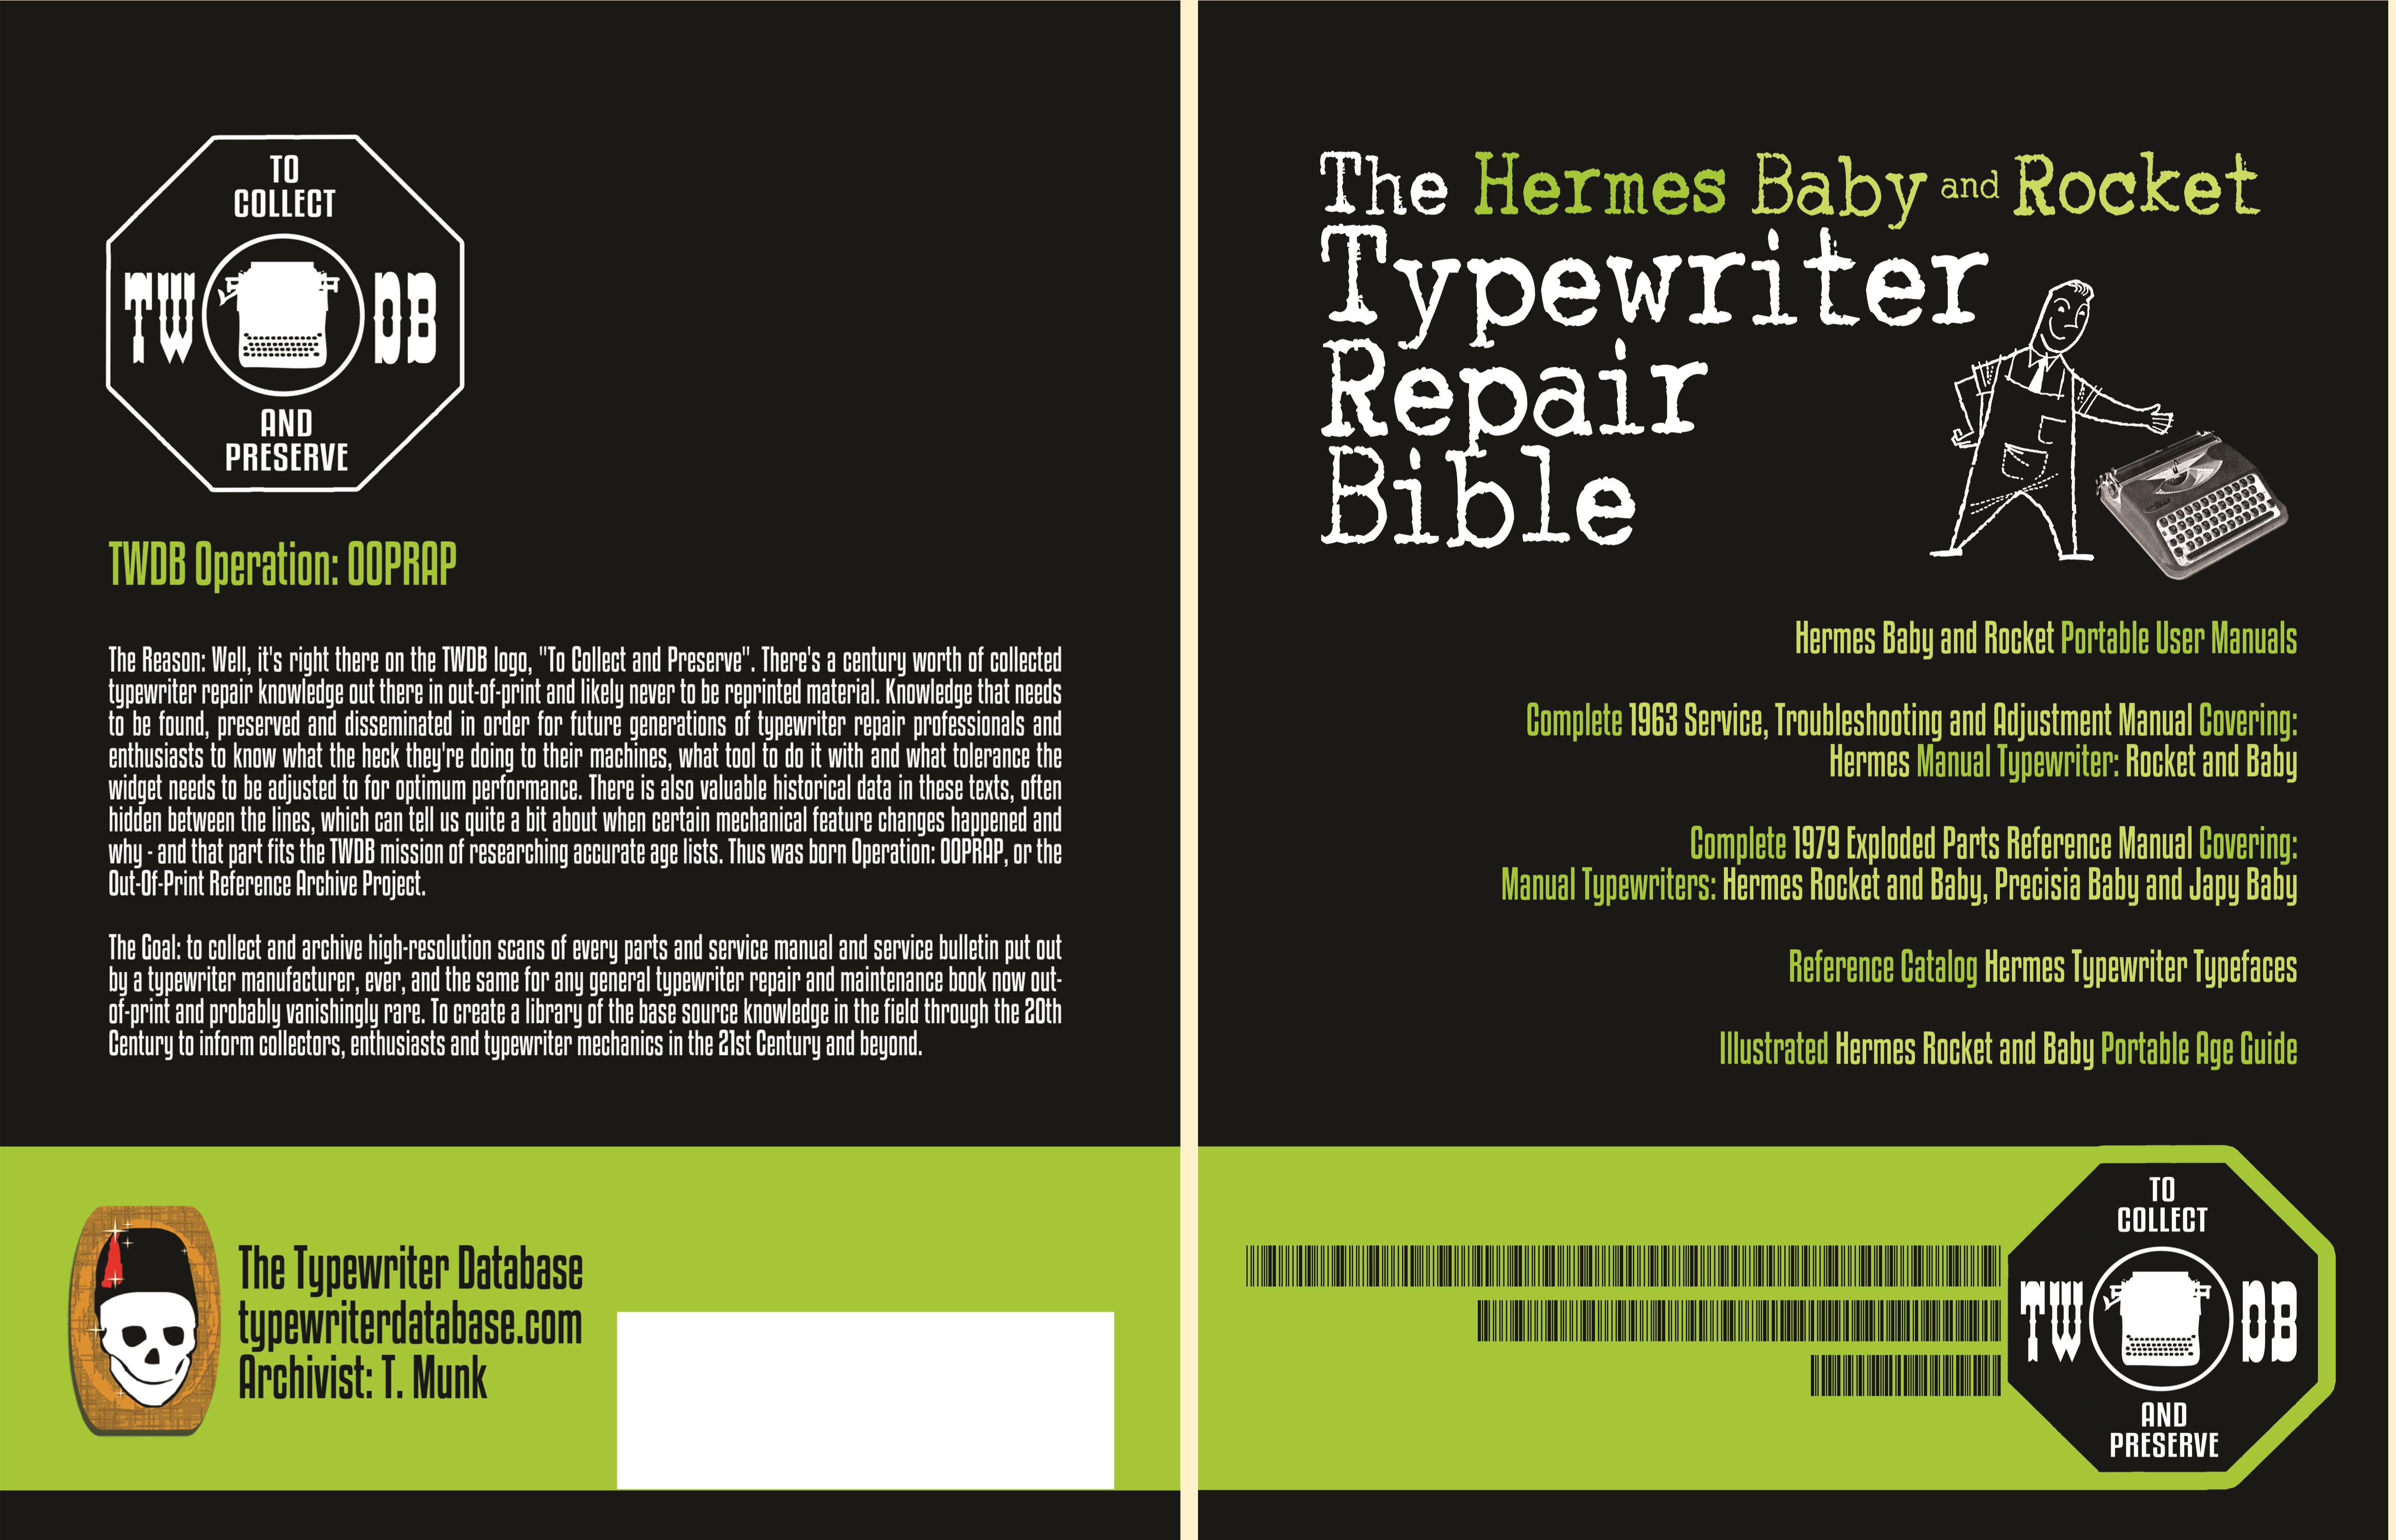 The Hermes Baby and Rocket Typewriter Repair Bible cover image